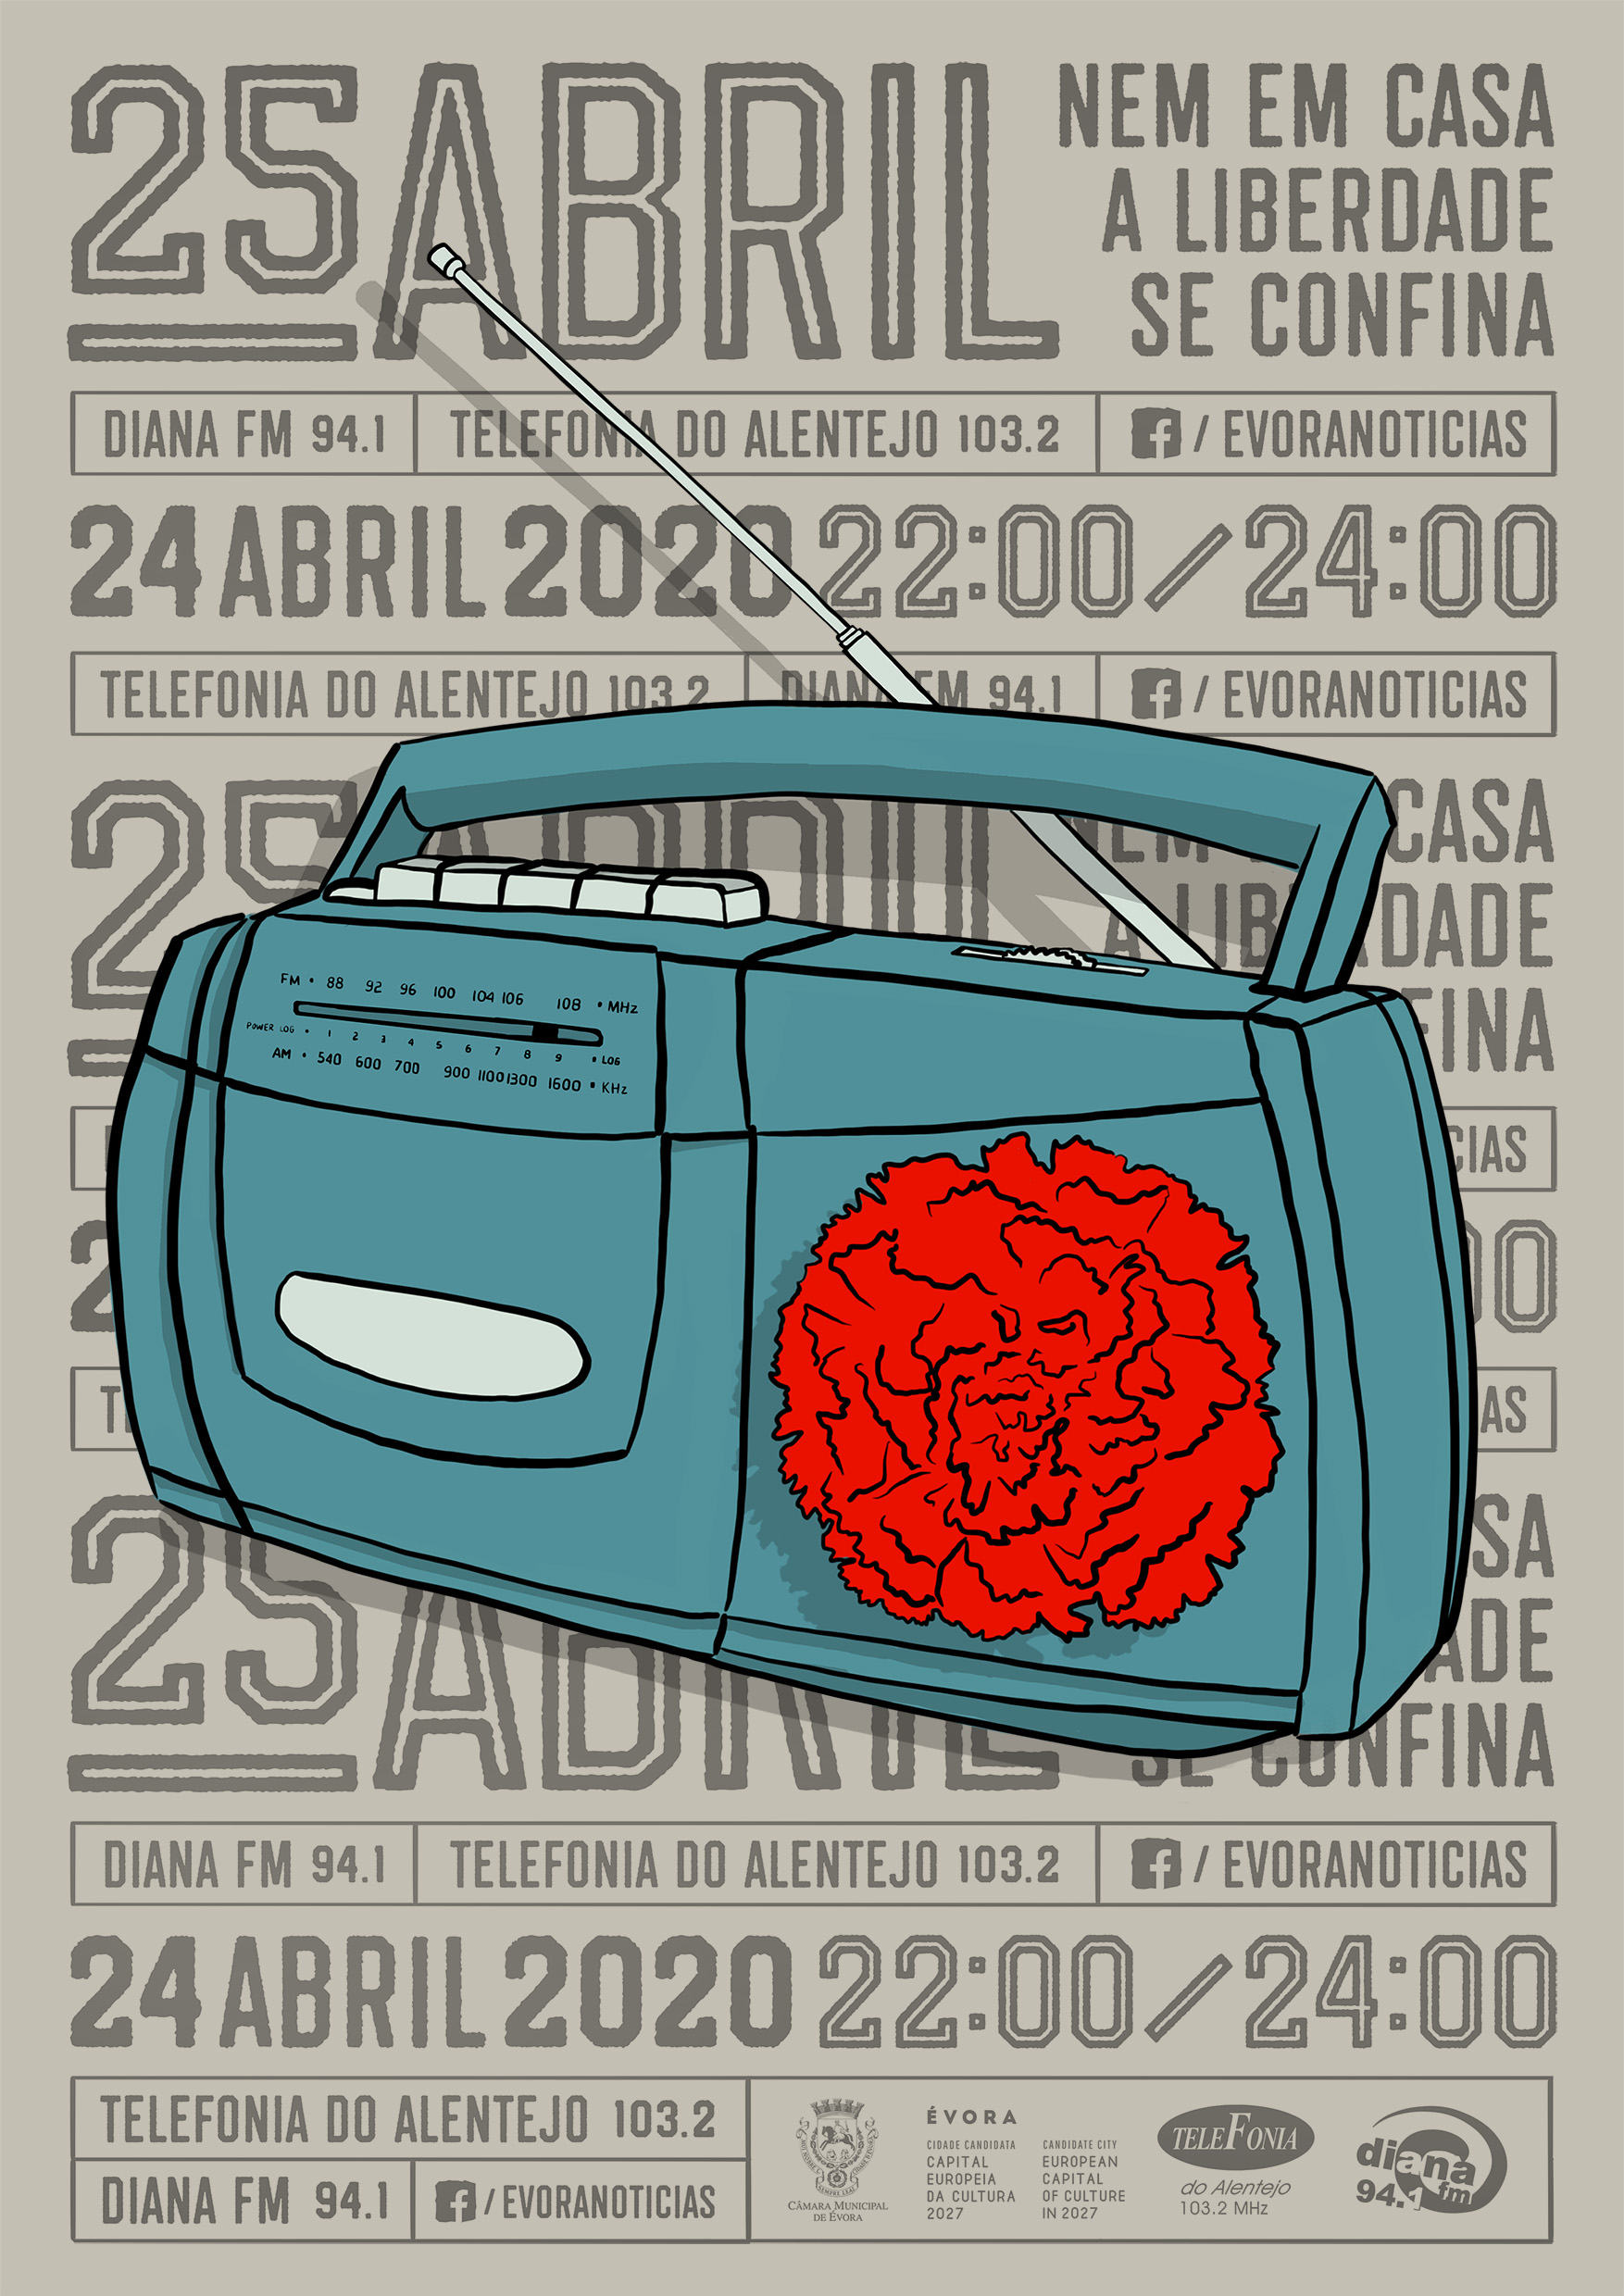 Cartaz Digital - 25Abril2020.jpg